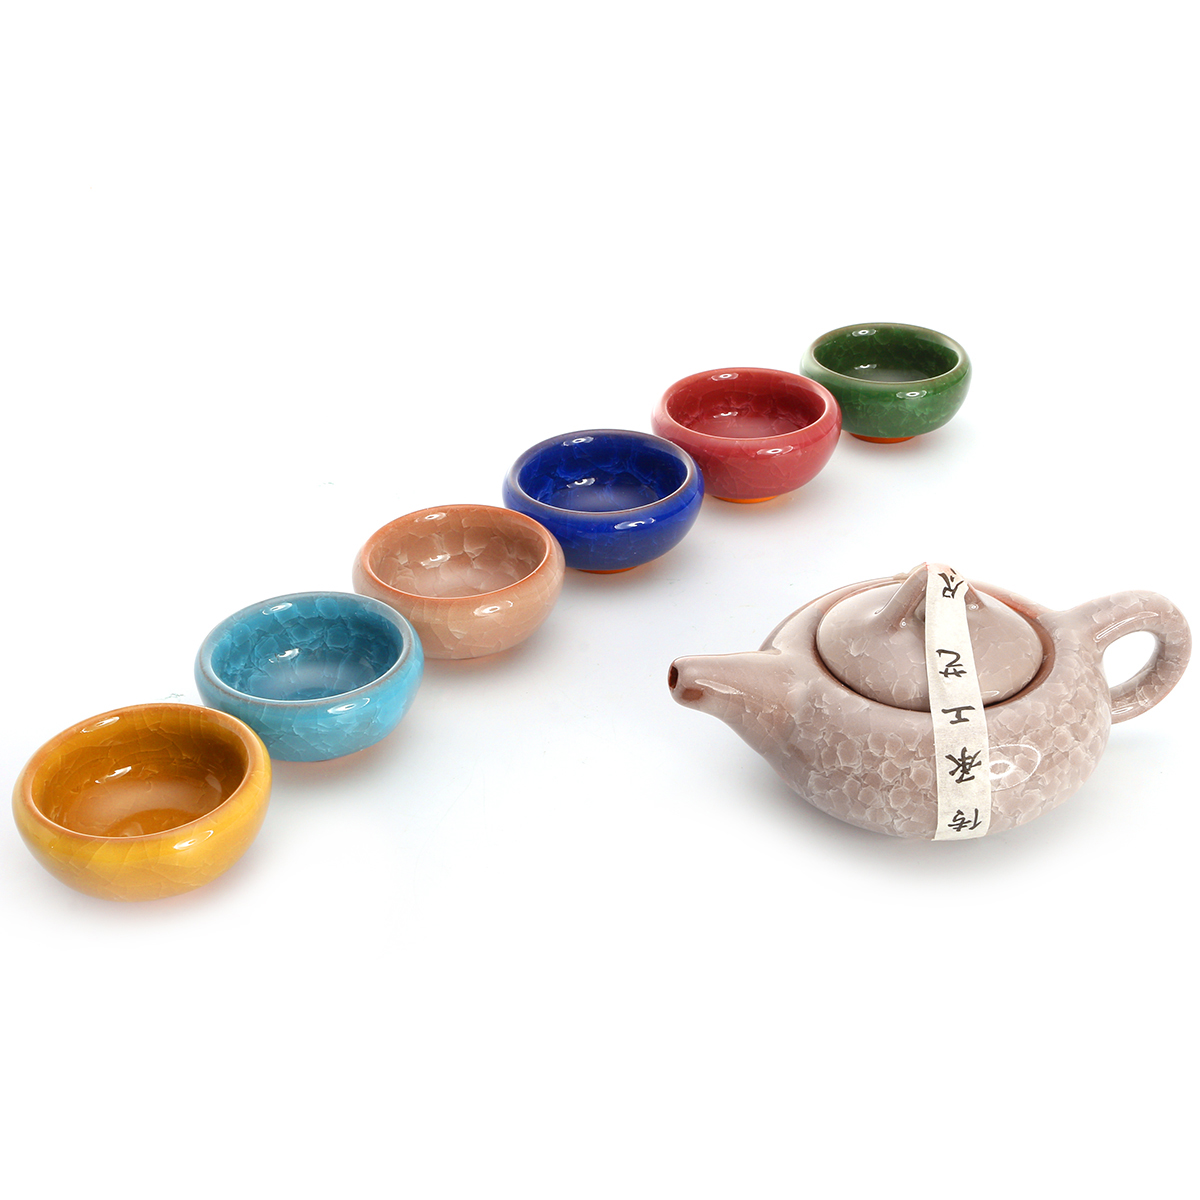 7Pcs Colorful Vintage Ceramic Chinese Crackle Tea Set Teacup Tea Pot Porcelain